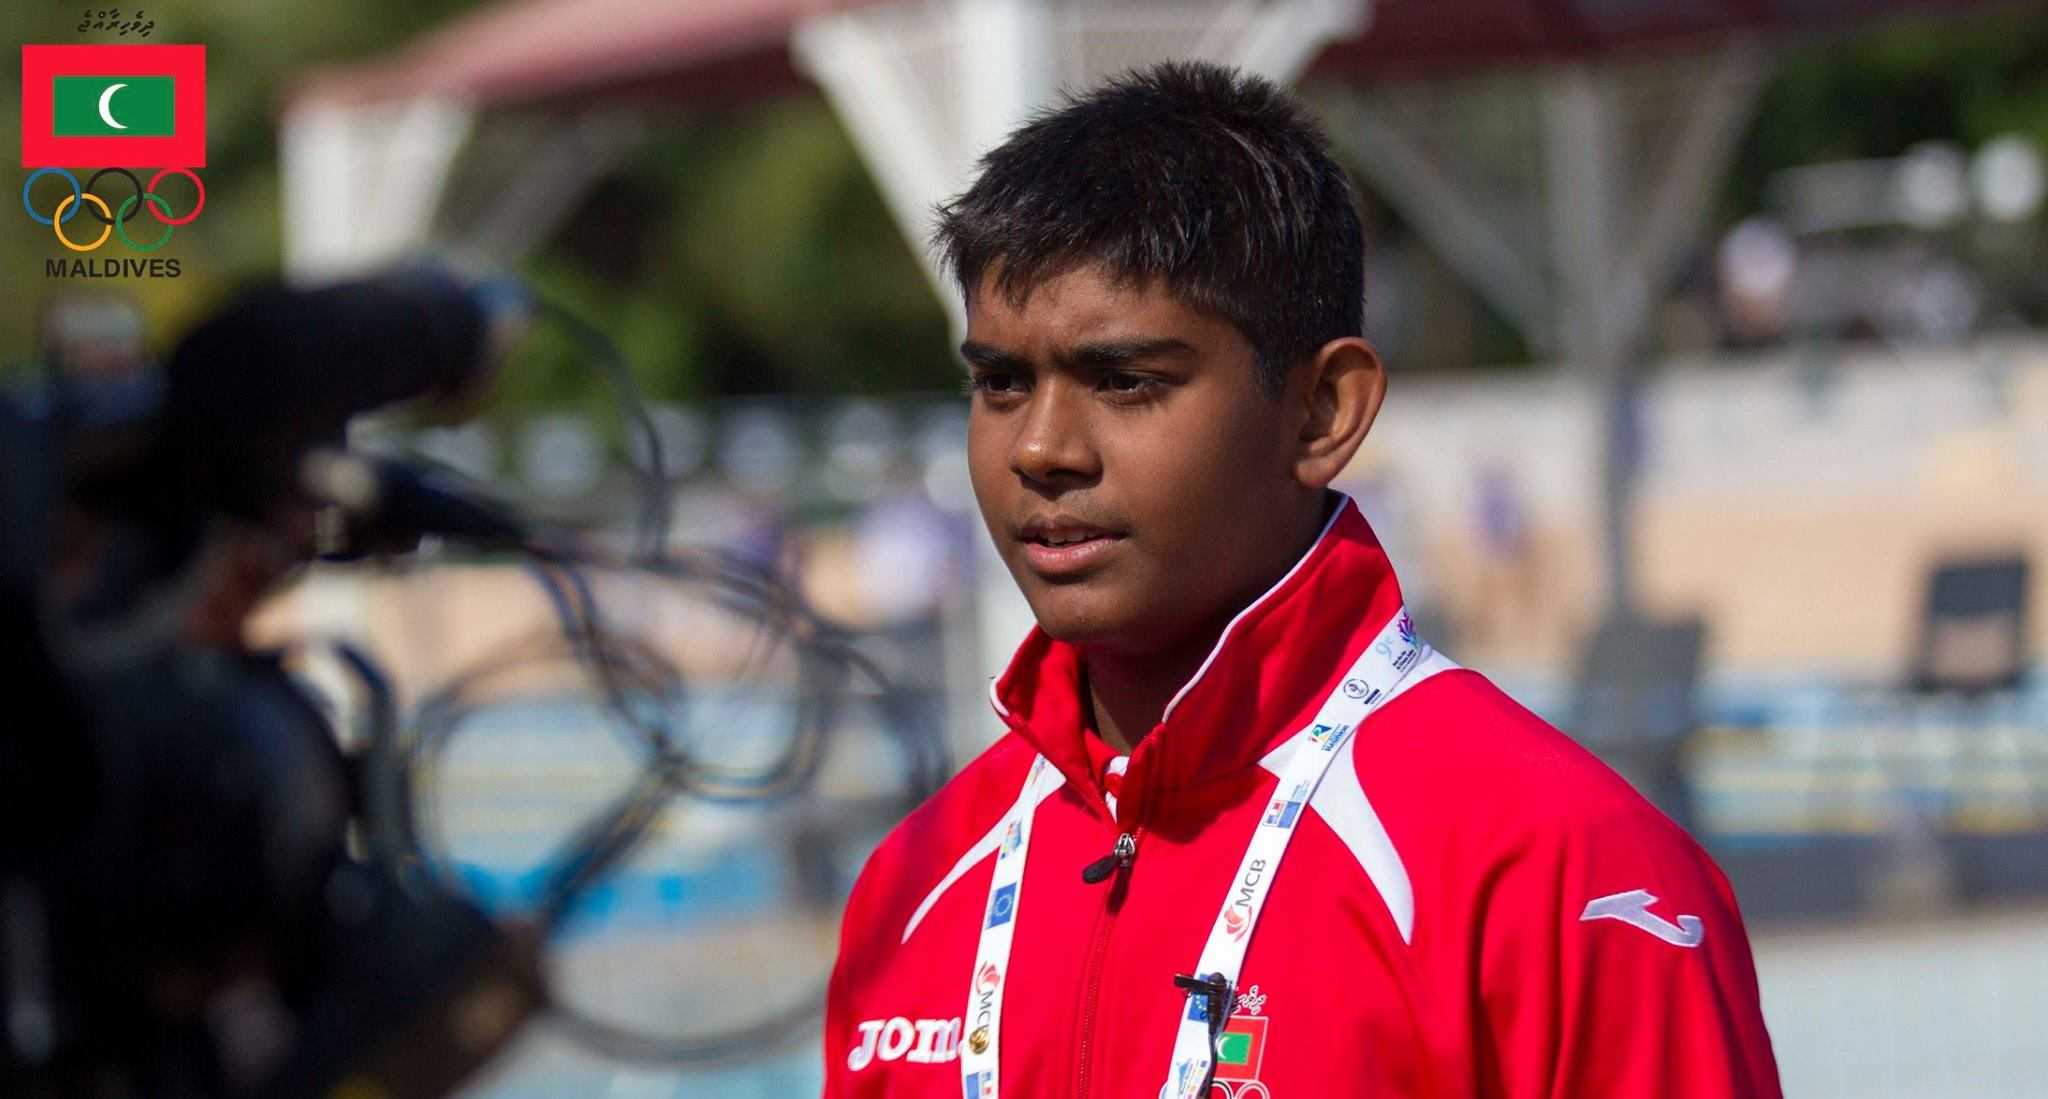 Ismail Muthasim Renews the National Record for 400m Freestyle